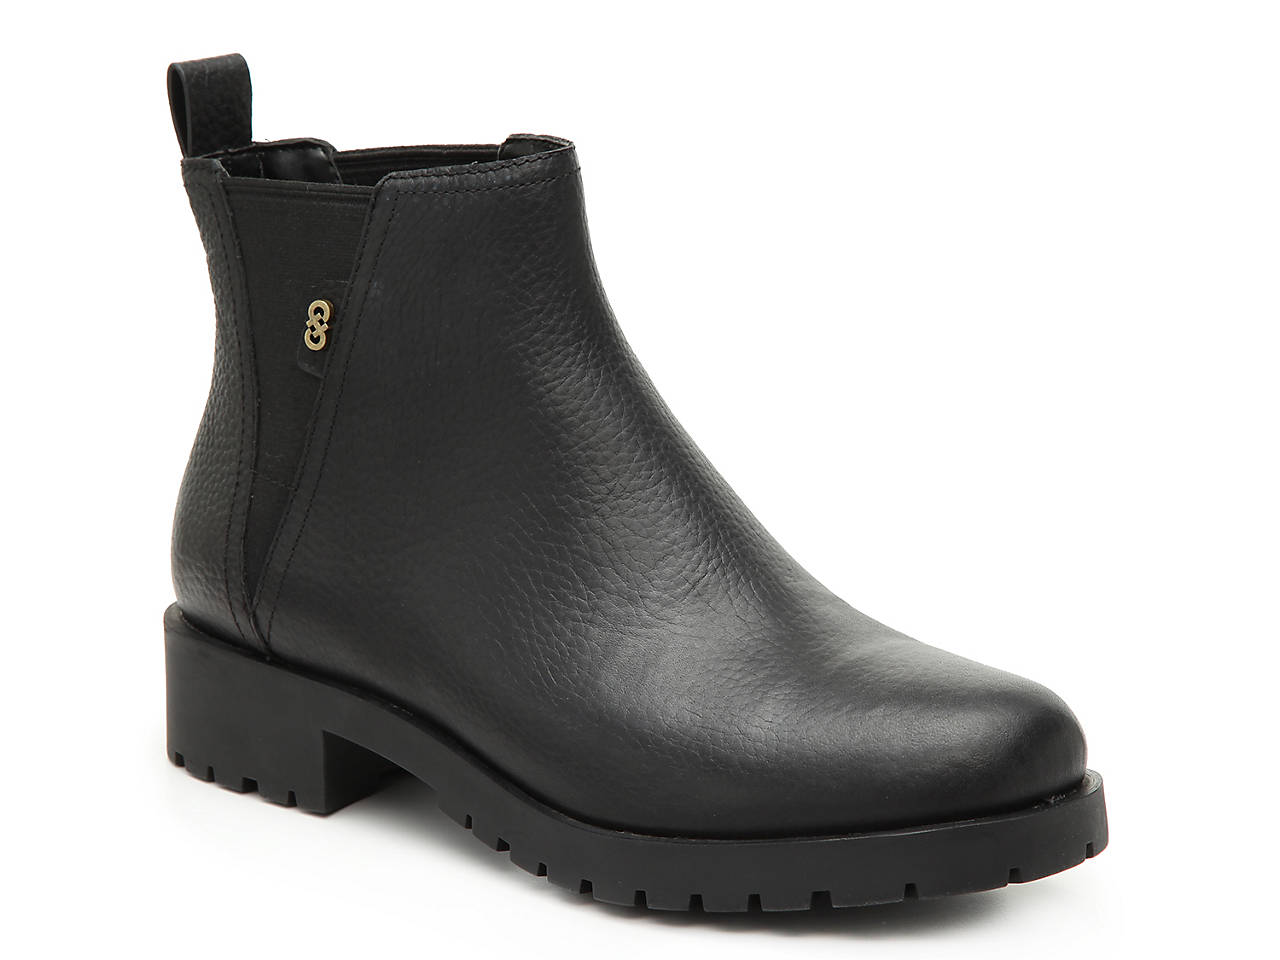 e68be9db9fd Calandra Chelsea Boot